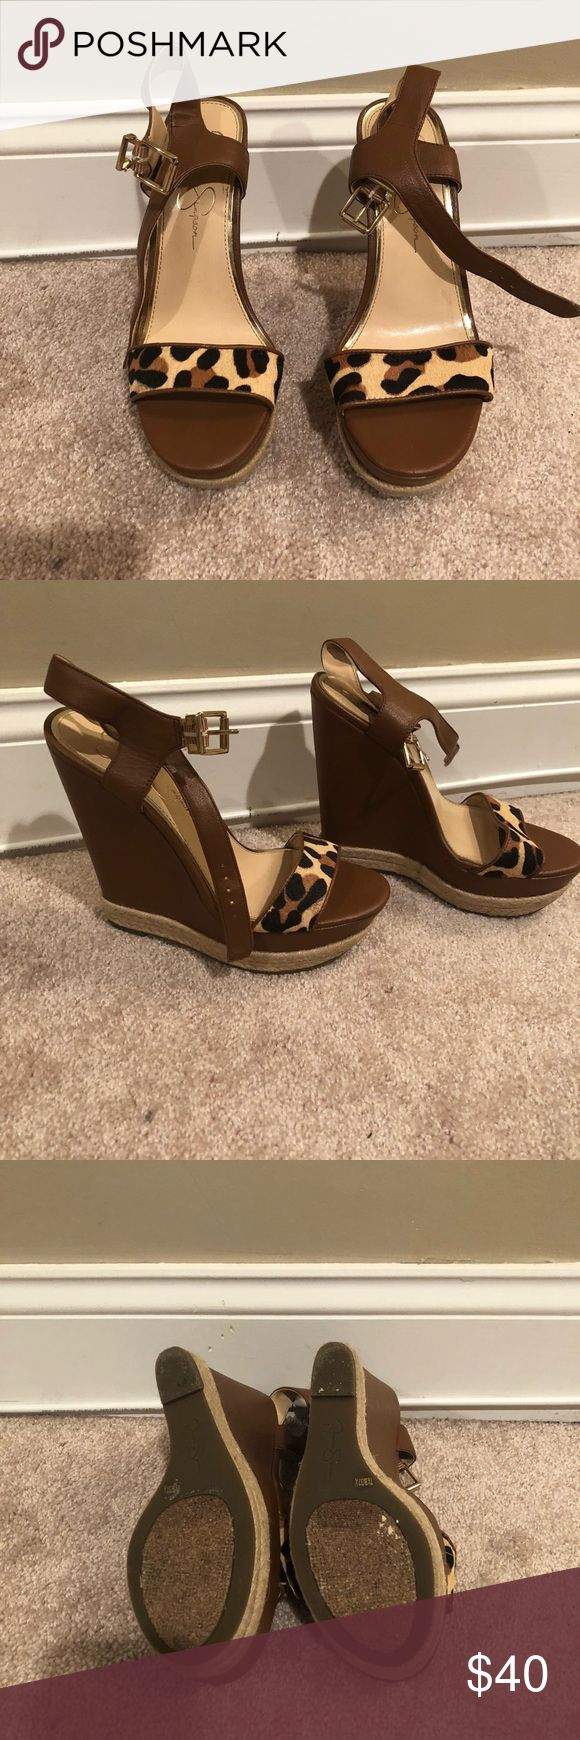 Jessica Simpson Wedges Jessica Simpson wedges, great condition, worn once, size 7.5 Jessica Simpson Shoes Wedges